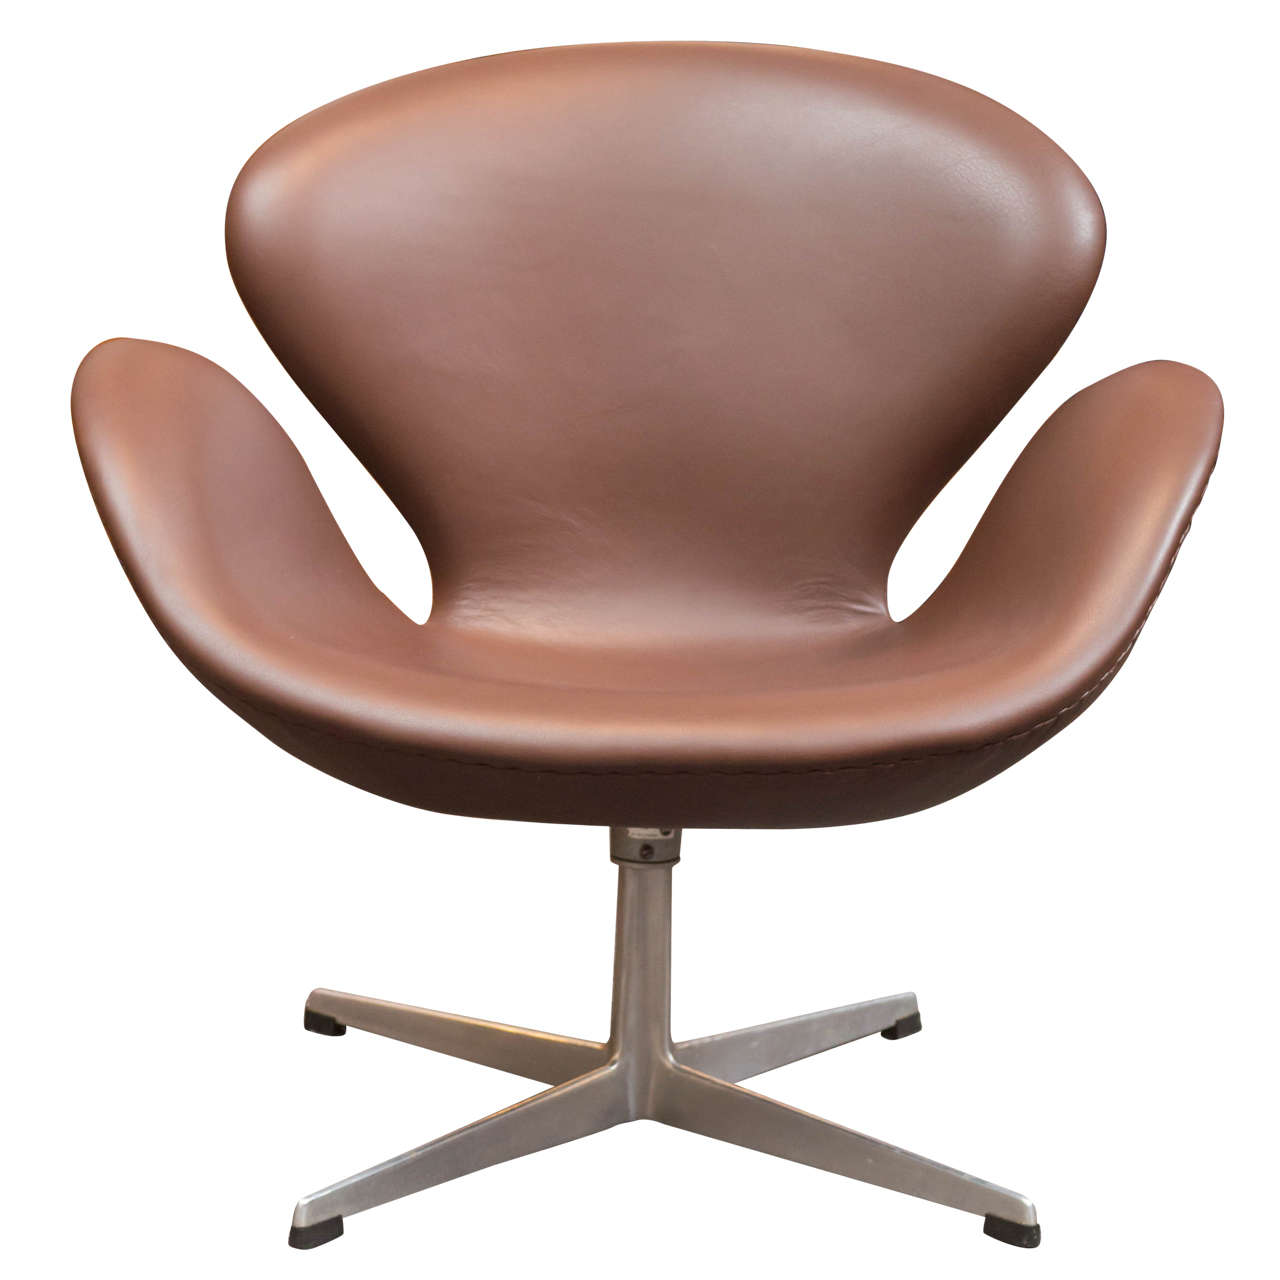 Arne Jacobsen Swan Chair Arne Jacobsen Swan Chair At 1stdibs